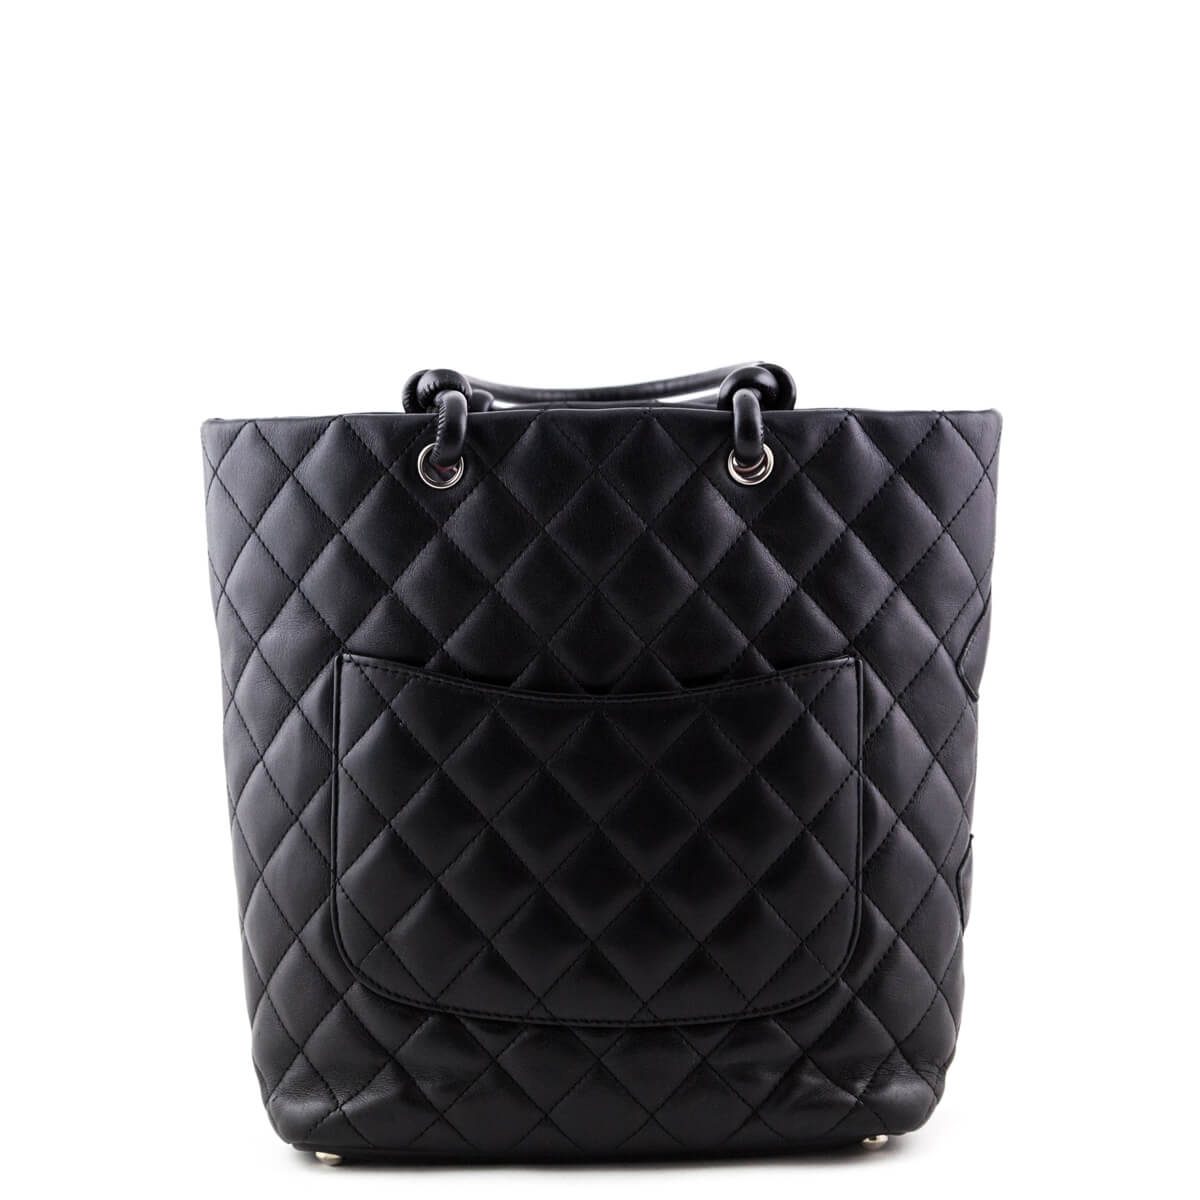 4e15b127aa94 ... Chanel Black Calfskin Medium Cambon Ligne Bucket Tote - LOVE that BAG -  Preowned Authentic Designer ...